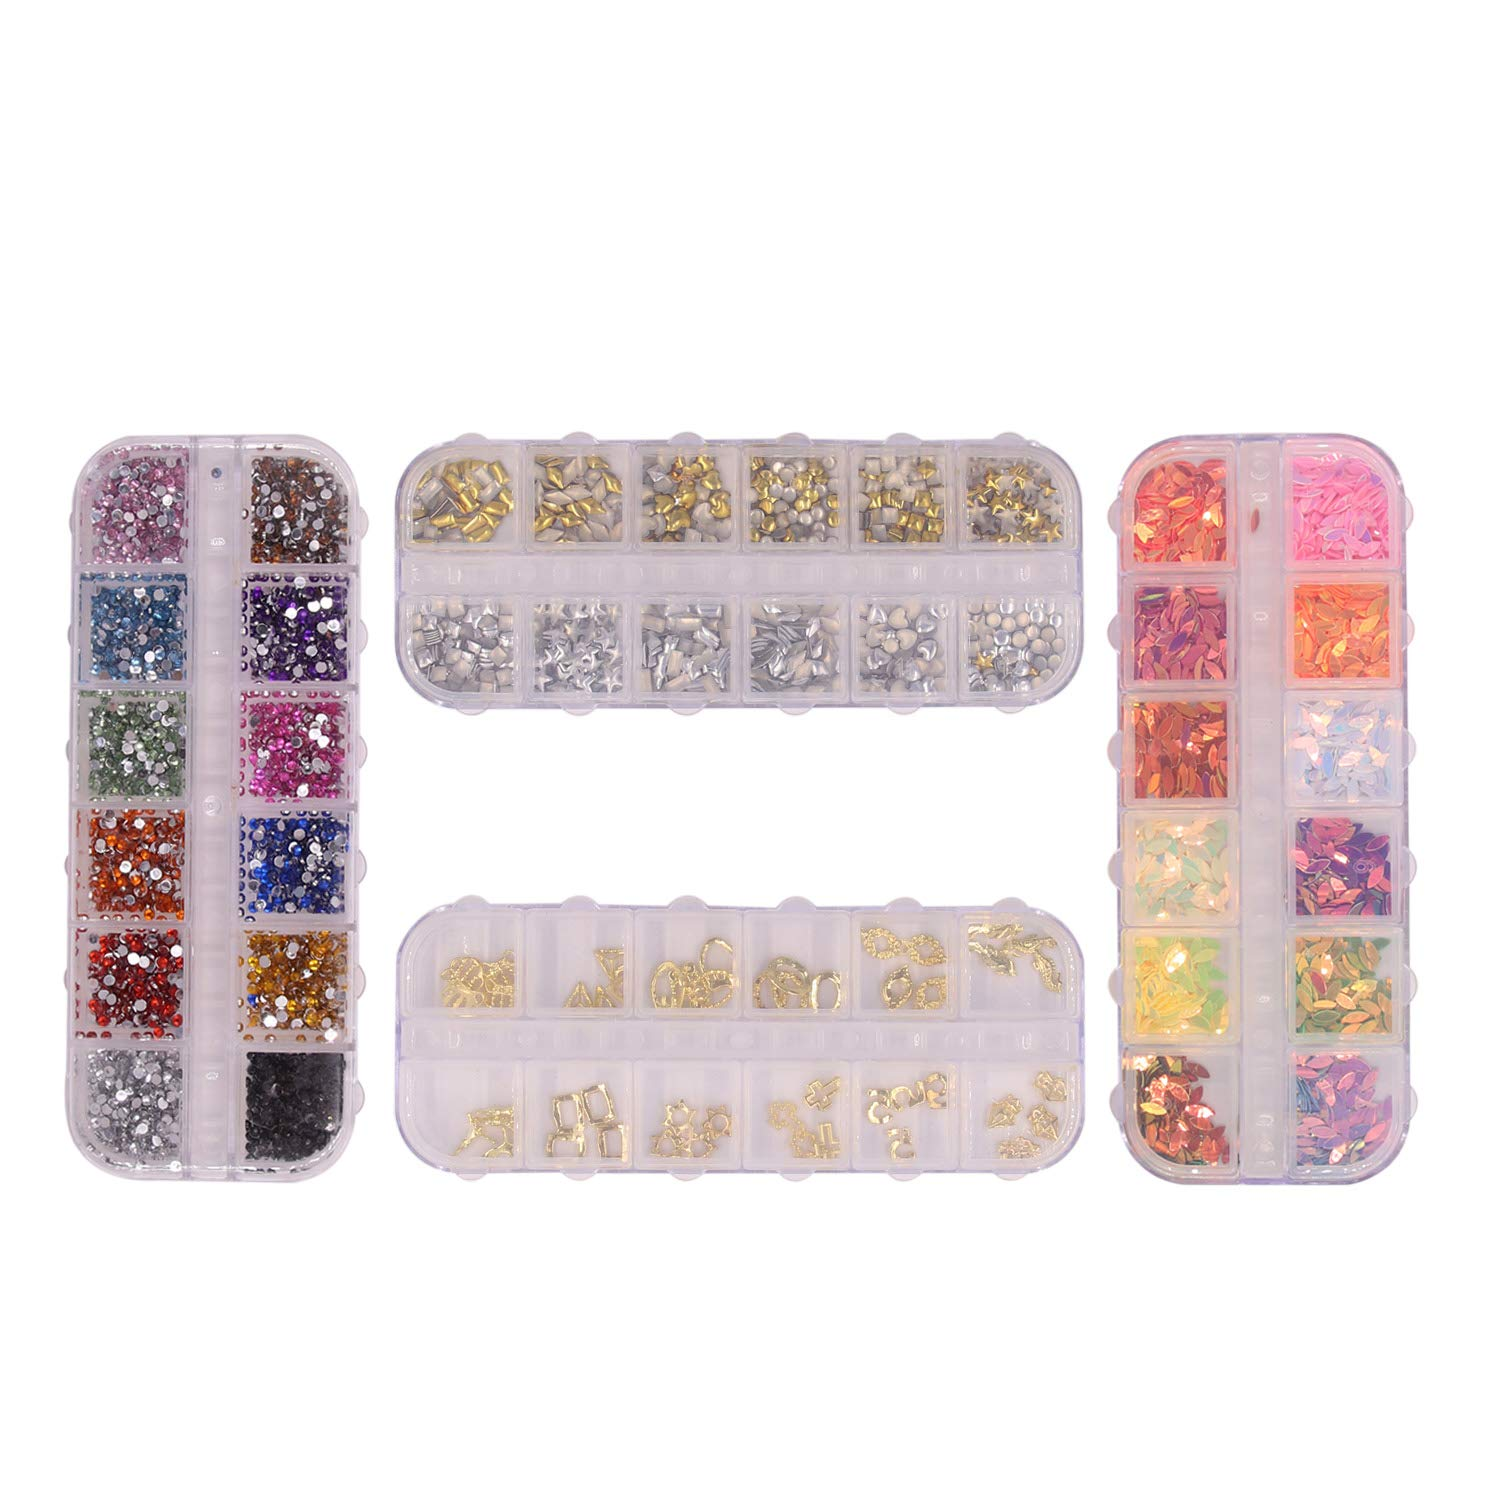 4 Boxes of Nail Art Rhinestones Multicolor Multi-designed Nail Gems Nail Studs Horse Eye Rivets Rhinestones for Nail Art Decorations Supplies by Polly Online